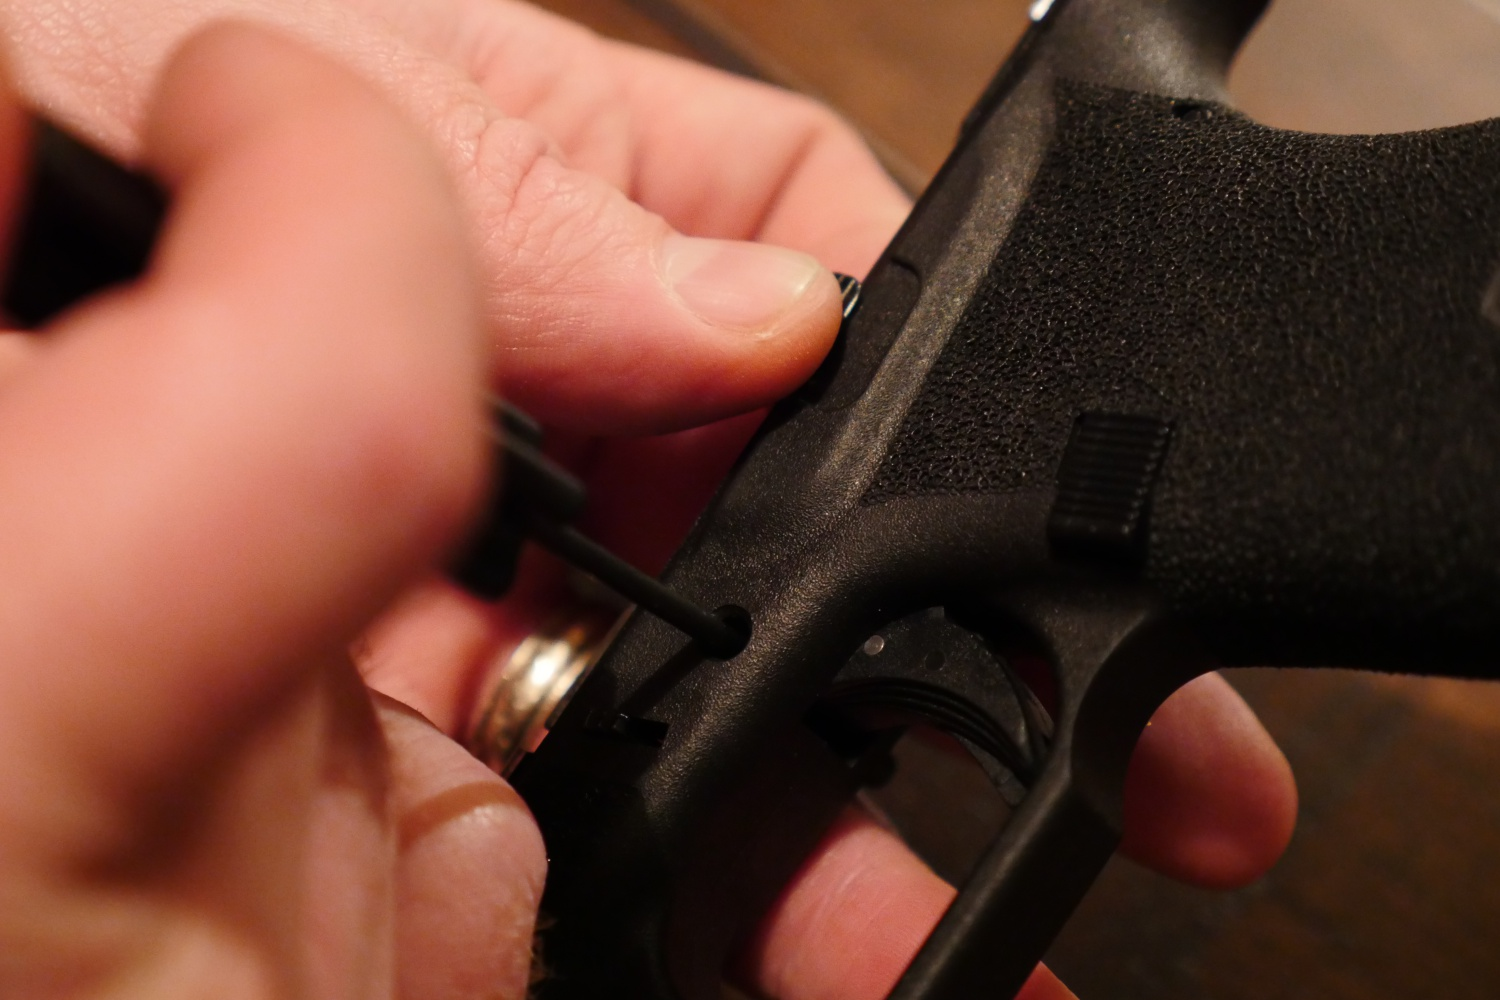 Review: Vickers Tactical Mag Catch And Slide Stop For the